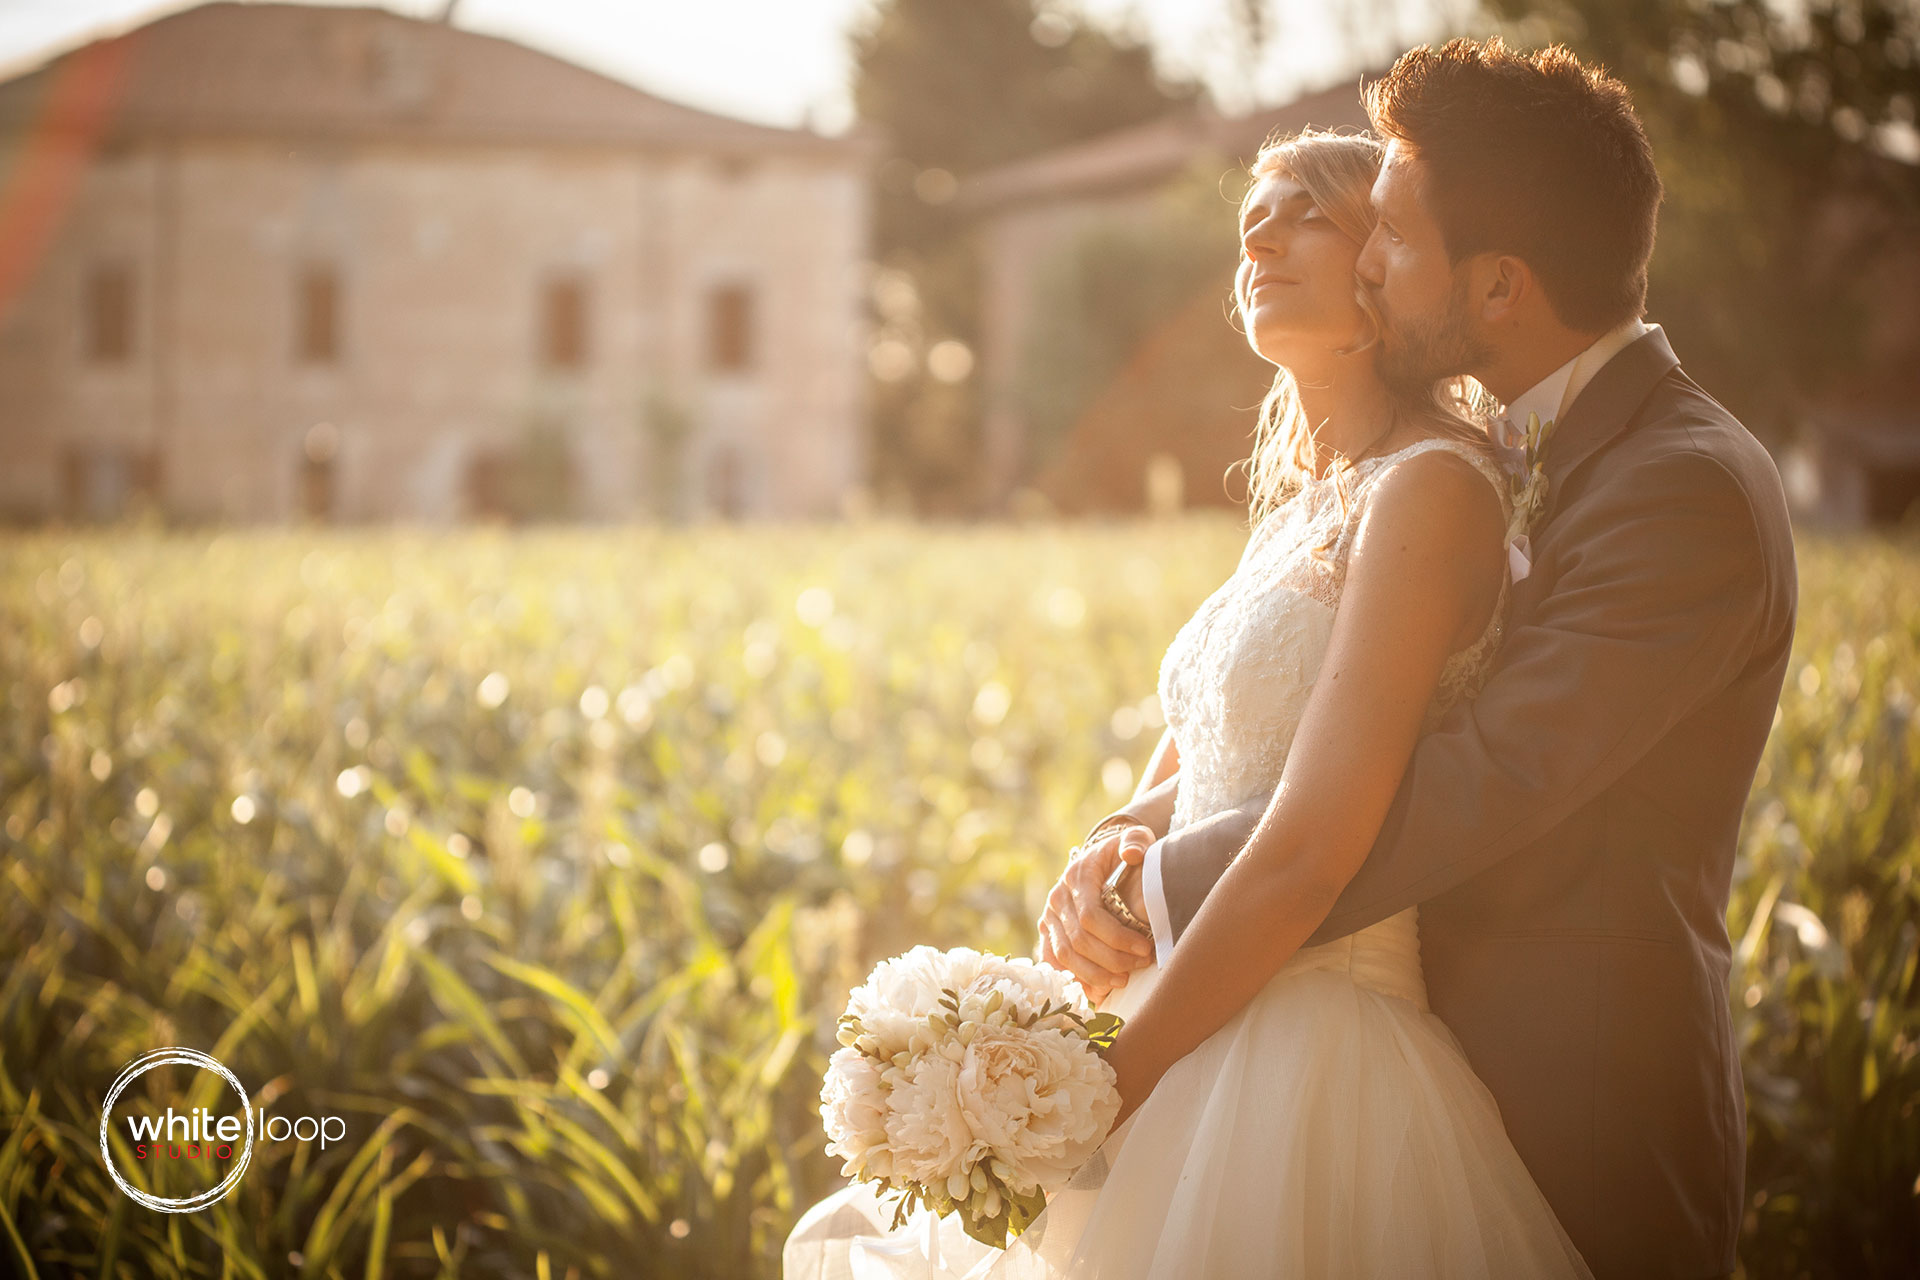 The sun is illuminating the couple that are holding each other in a very lovely way.